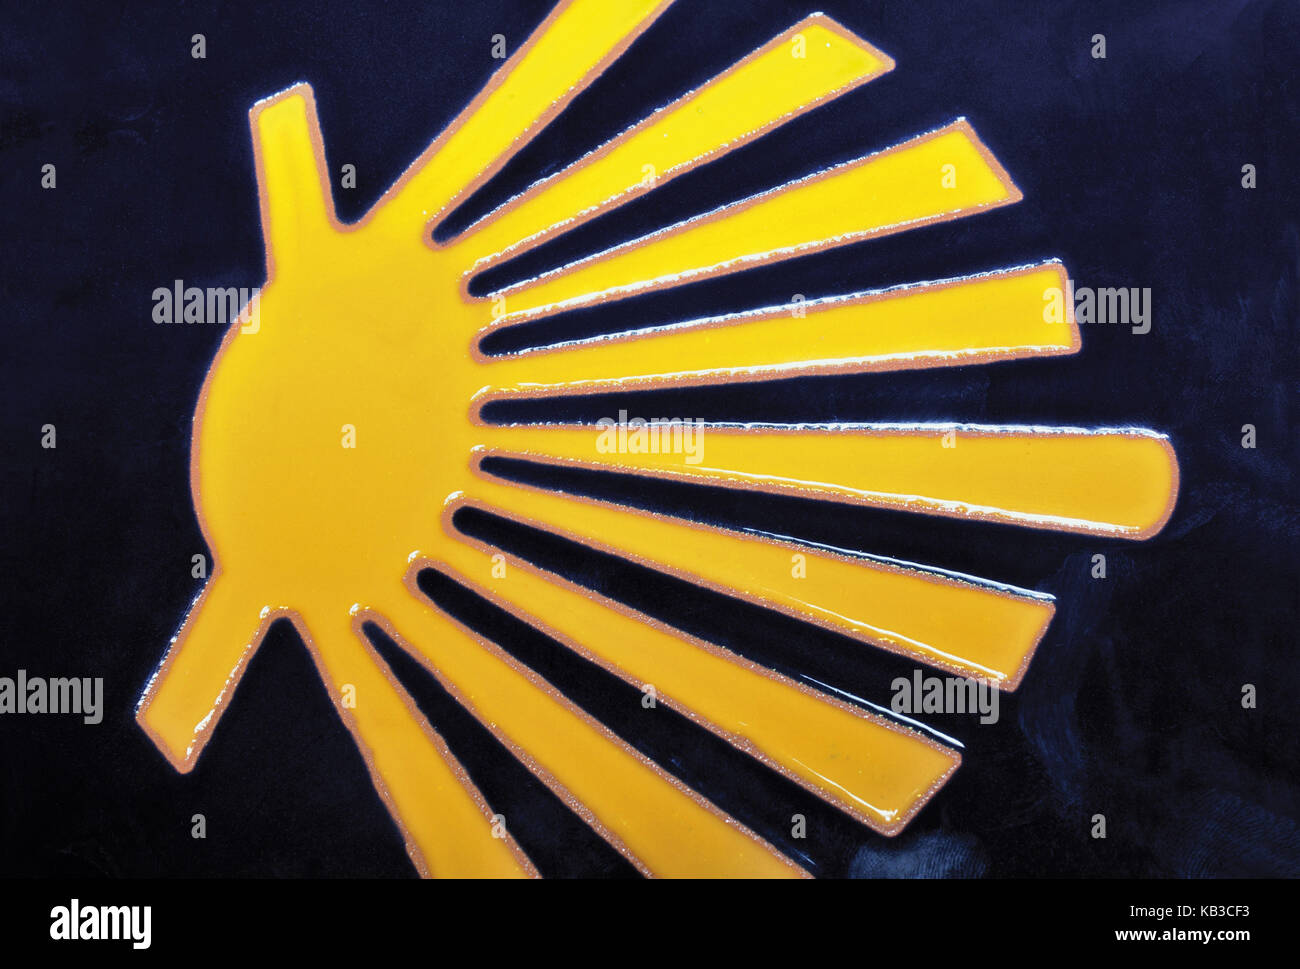 Spain, Way of St. James, yellow scallop shell on blue ground, icon of the Way of St. James, - Stock Image